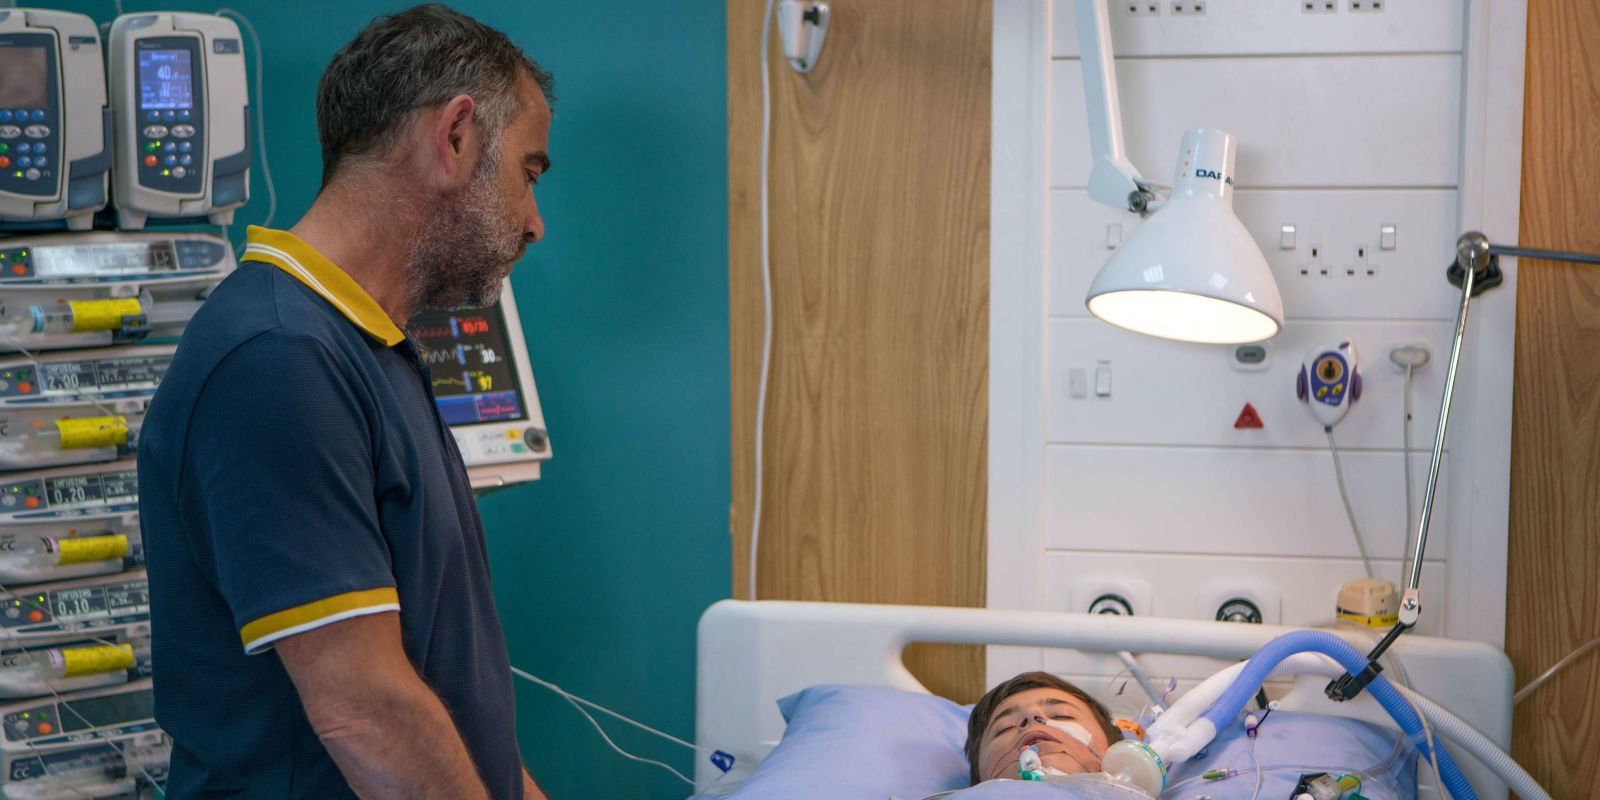 Coronation Street airs heartbreaking scenes tonight as Jack wakes up from surgery